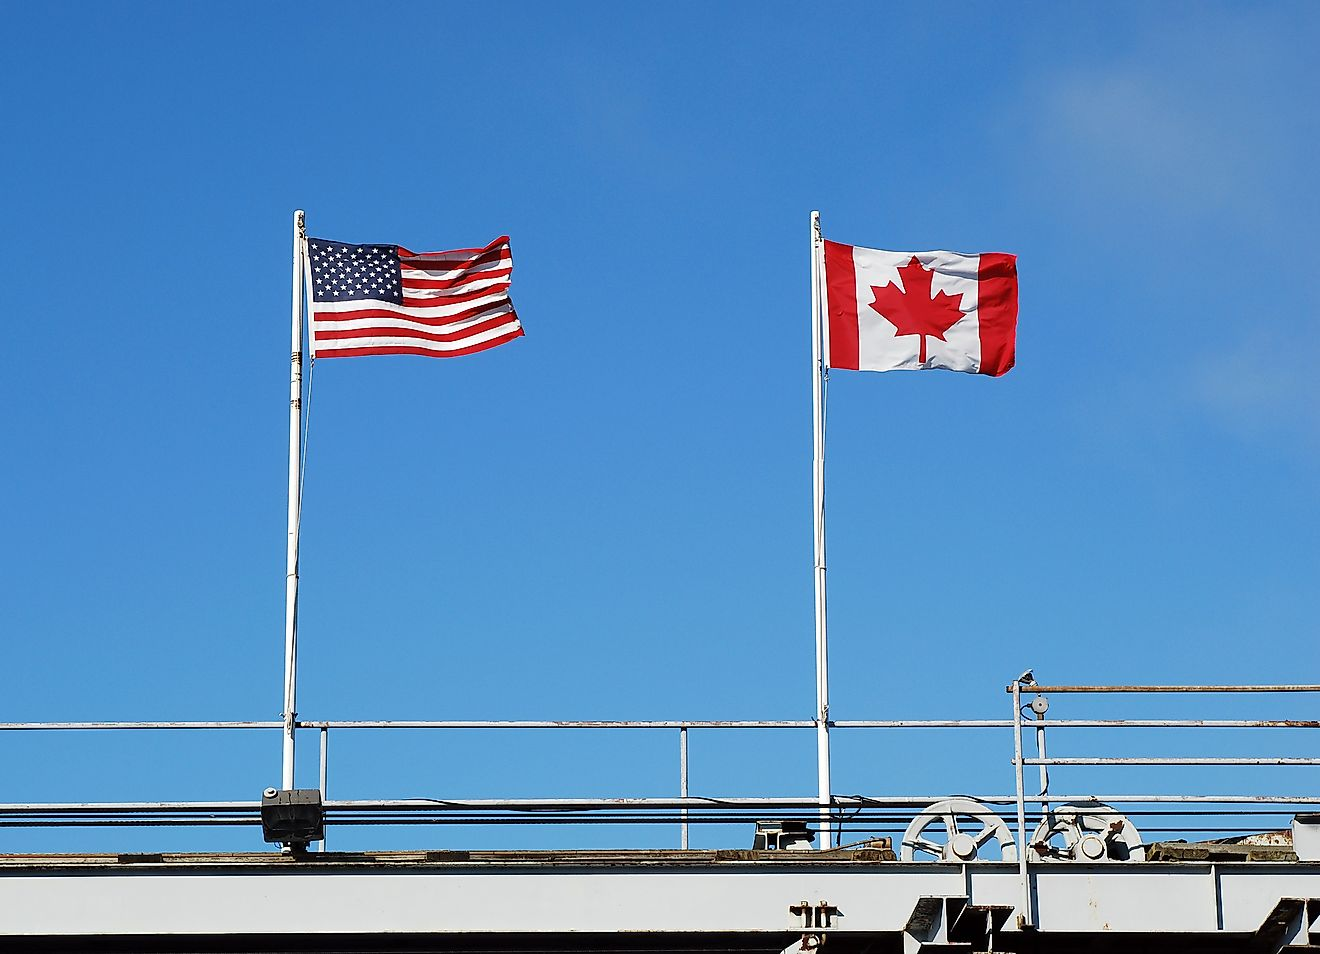 USA's and Canada's national flags fly at a US-Canada border. Image credit: Katherine Welles/Shutterstock.com